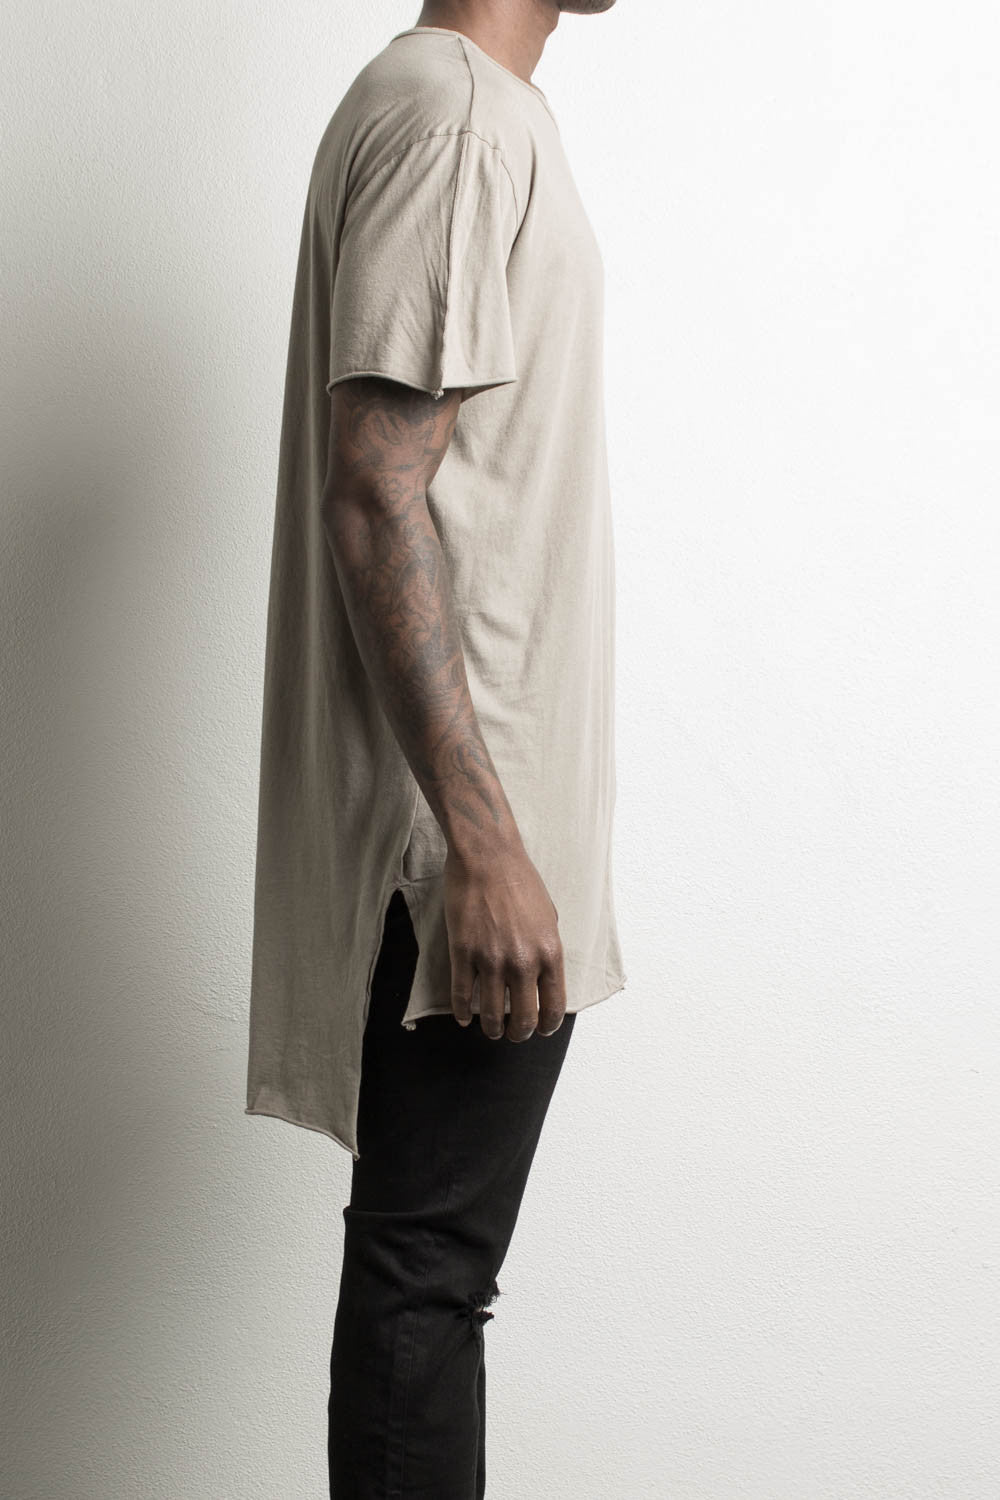 long tail shirt by daniel patrick in wheat